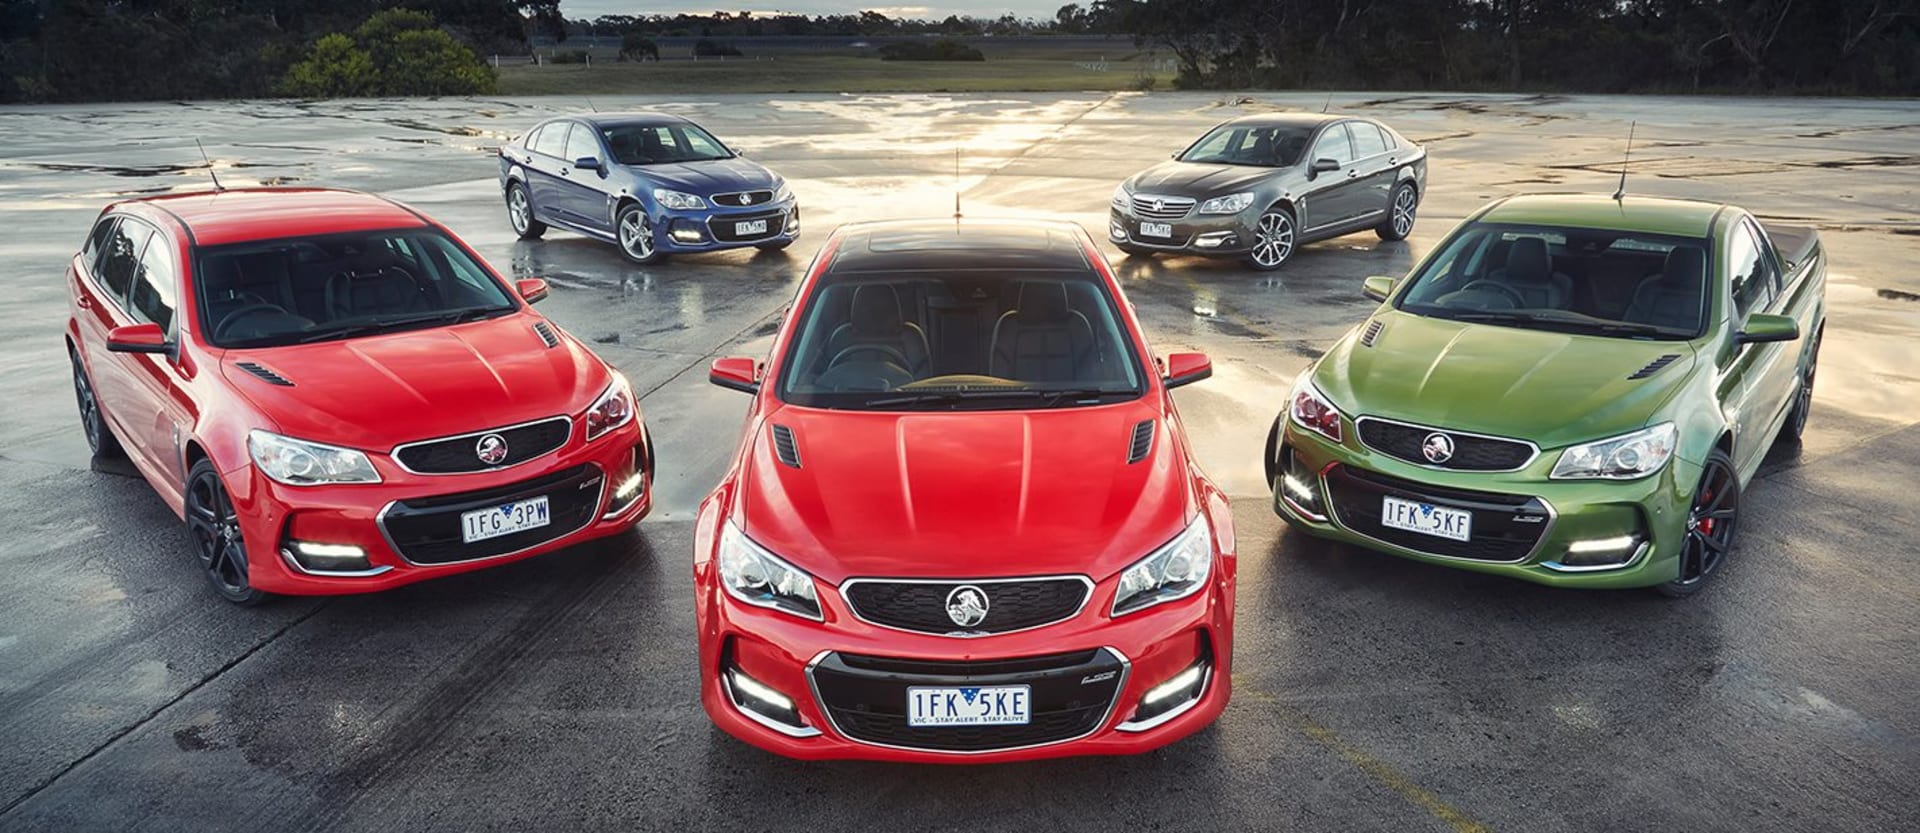 Holden posts a $152m profit as car making end draws near